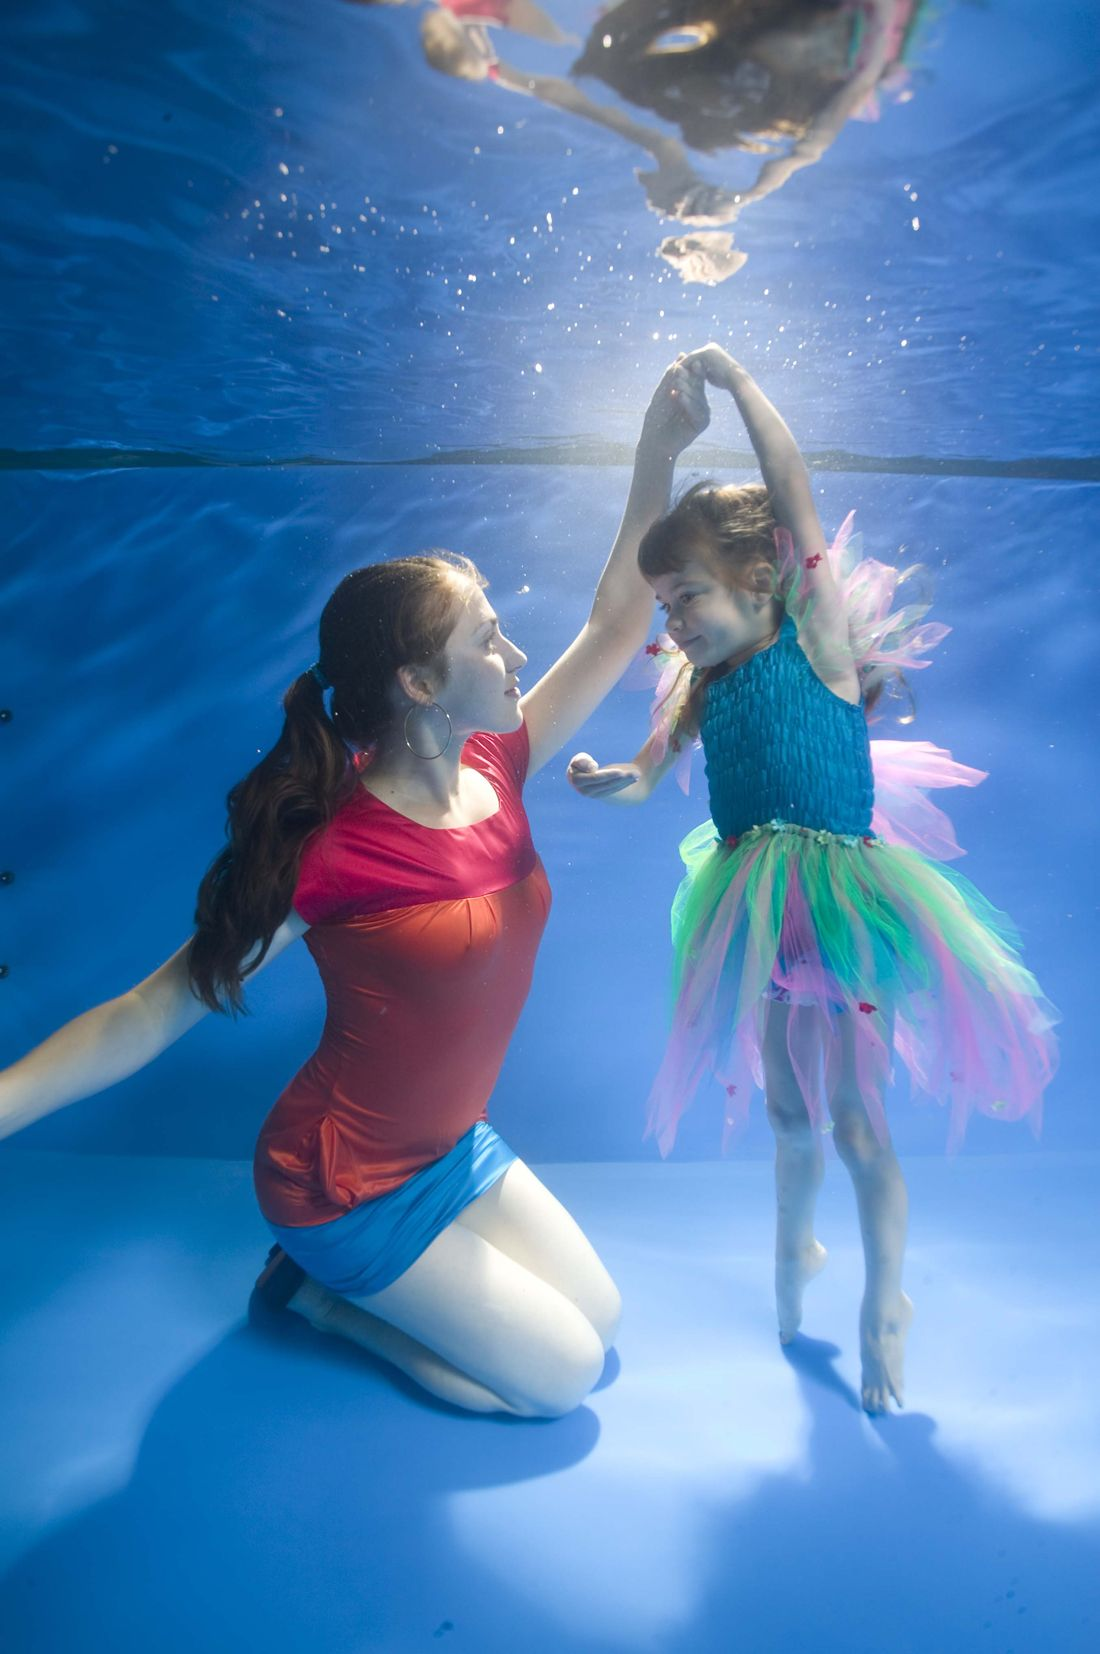 Babies swimming underwater inspiration photos - Baby Swimming From Water Babies Baby Swimming Lessons Are Fun Improve Water Confidence And Brain Development Buy A Professional Underwater Photo Of Your